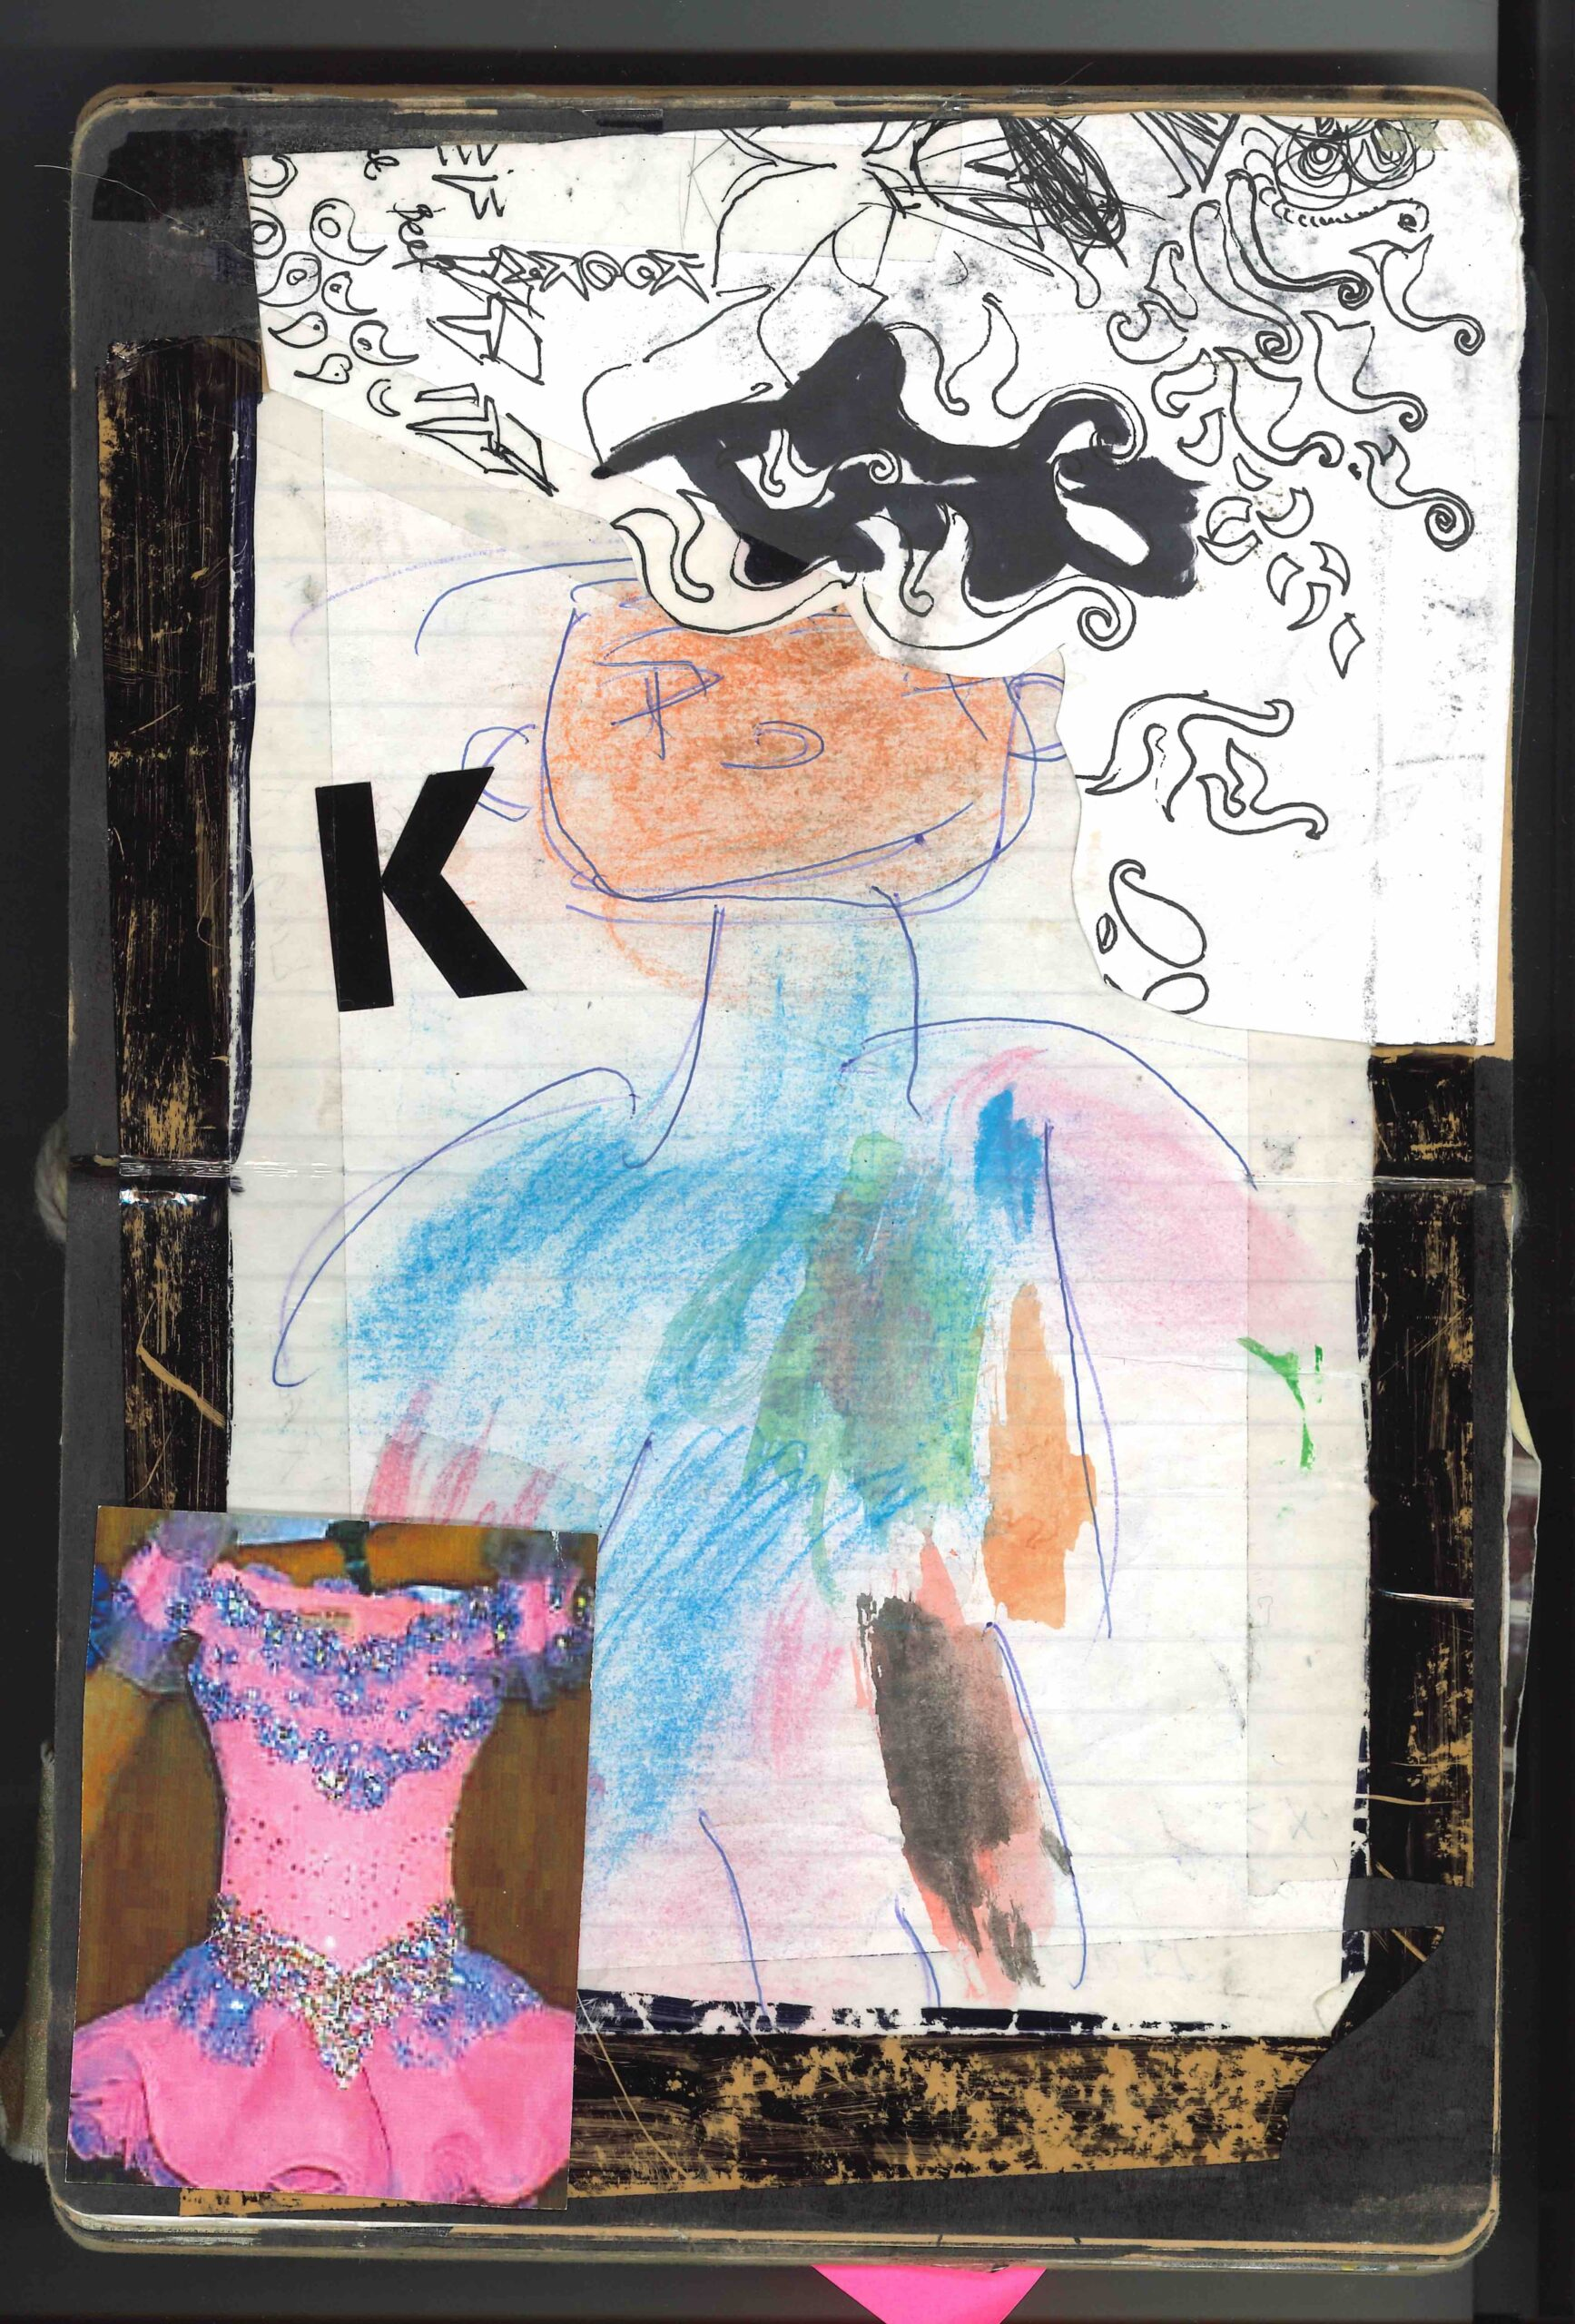 An exclusive look through Christopher Kane's first sketchbooks